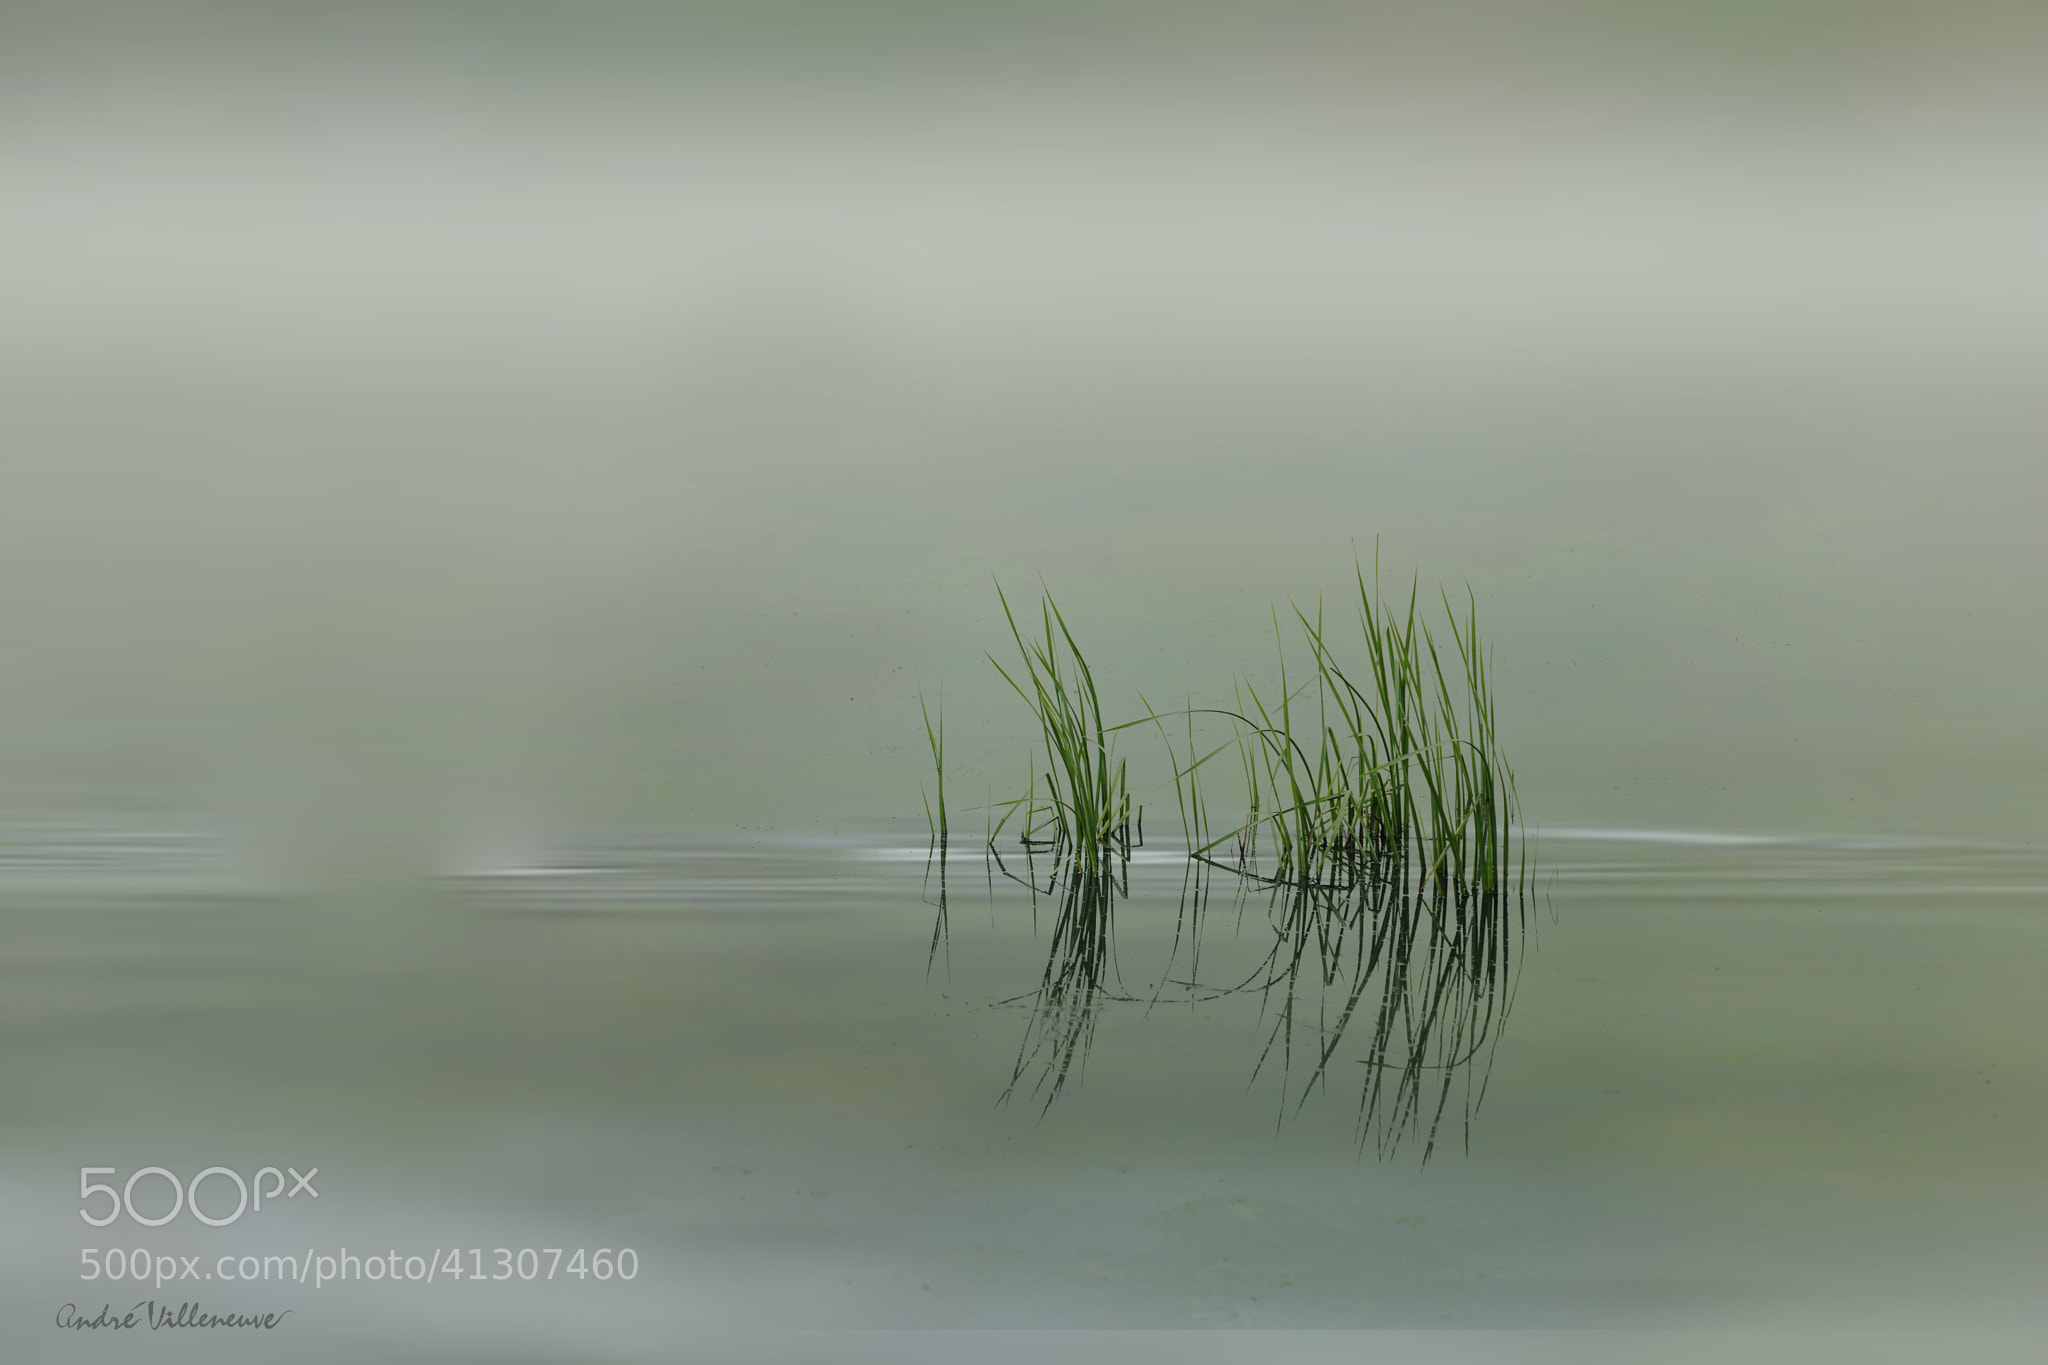 Photograph L'herbage by Andre Villeneuve on 500px